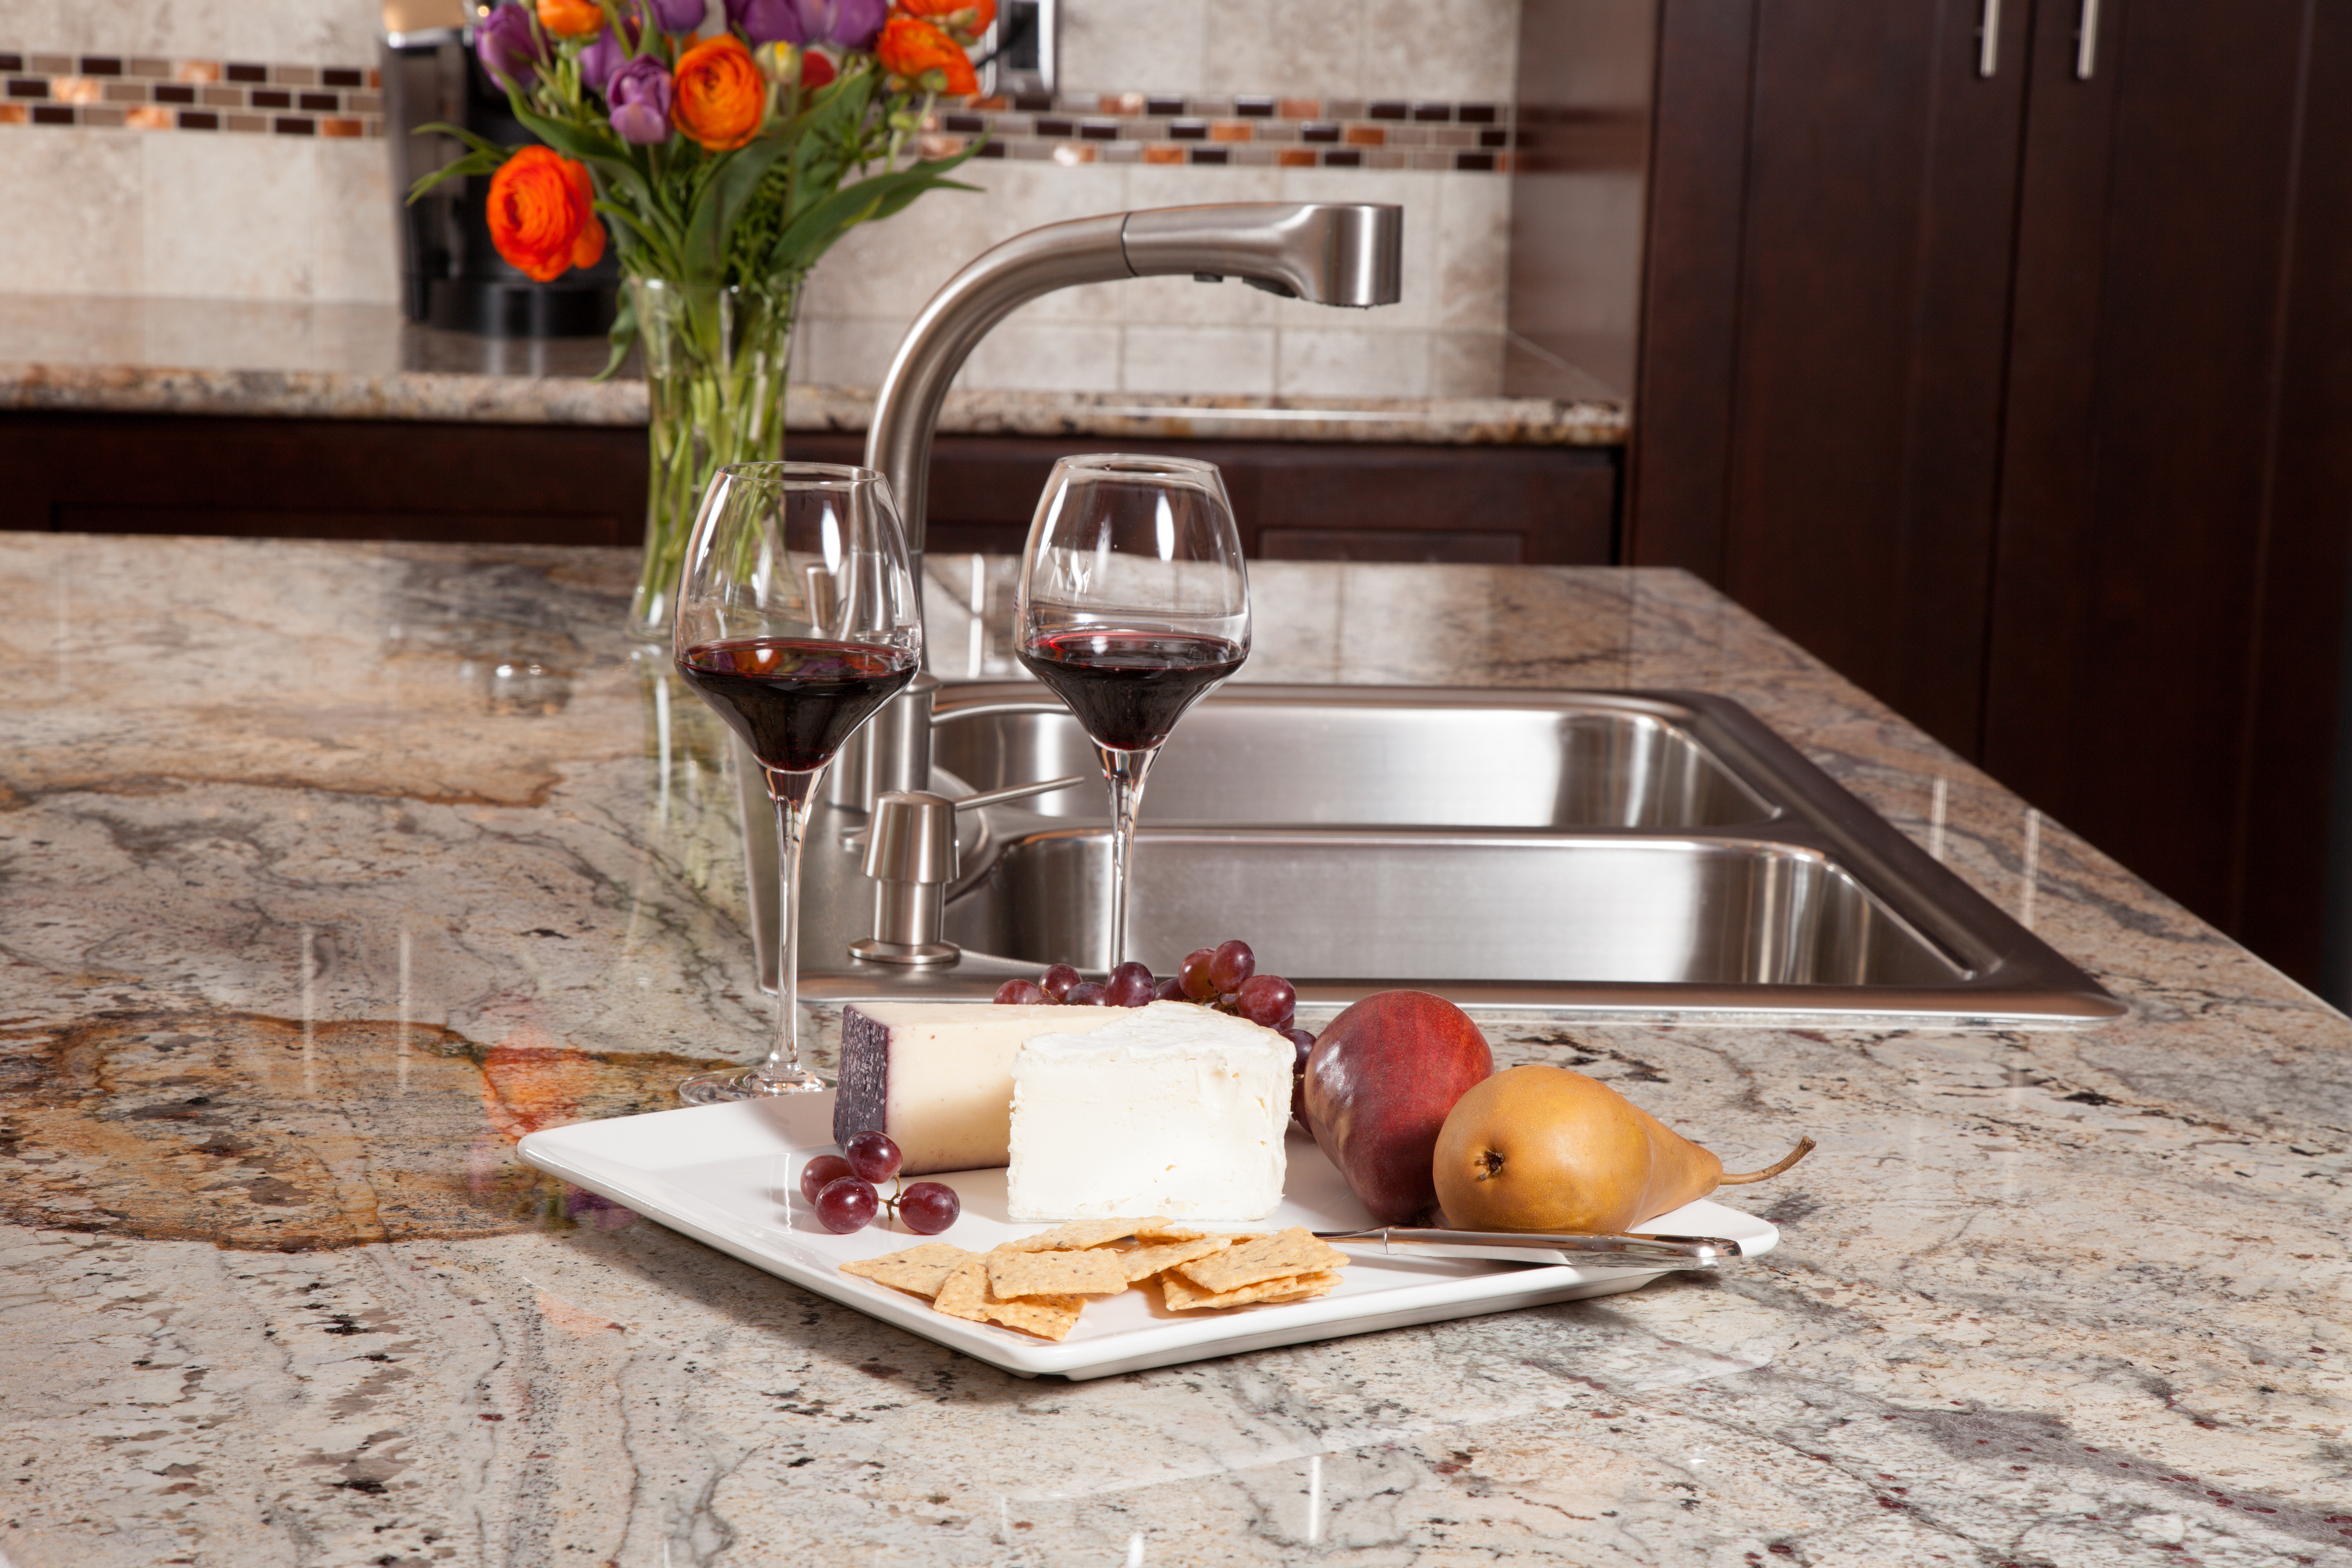 new tile options tops granite of countertops prices countertop kitchen